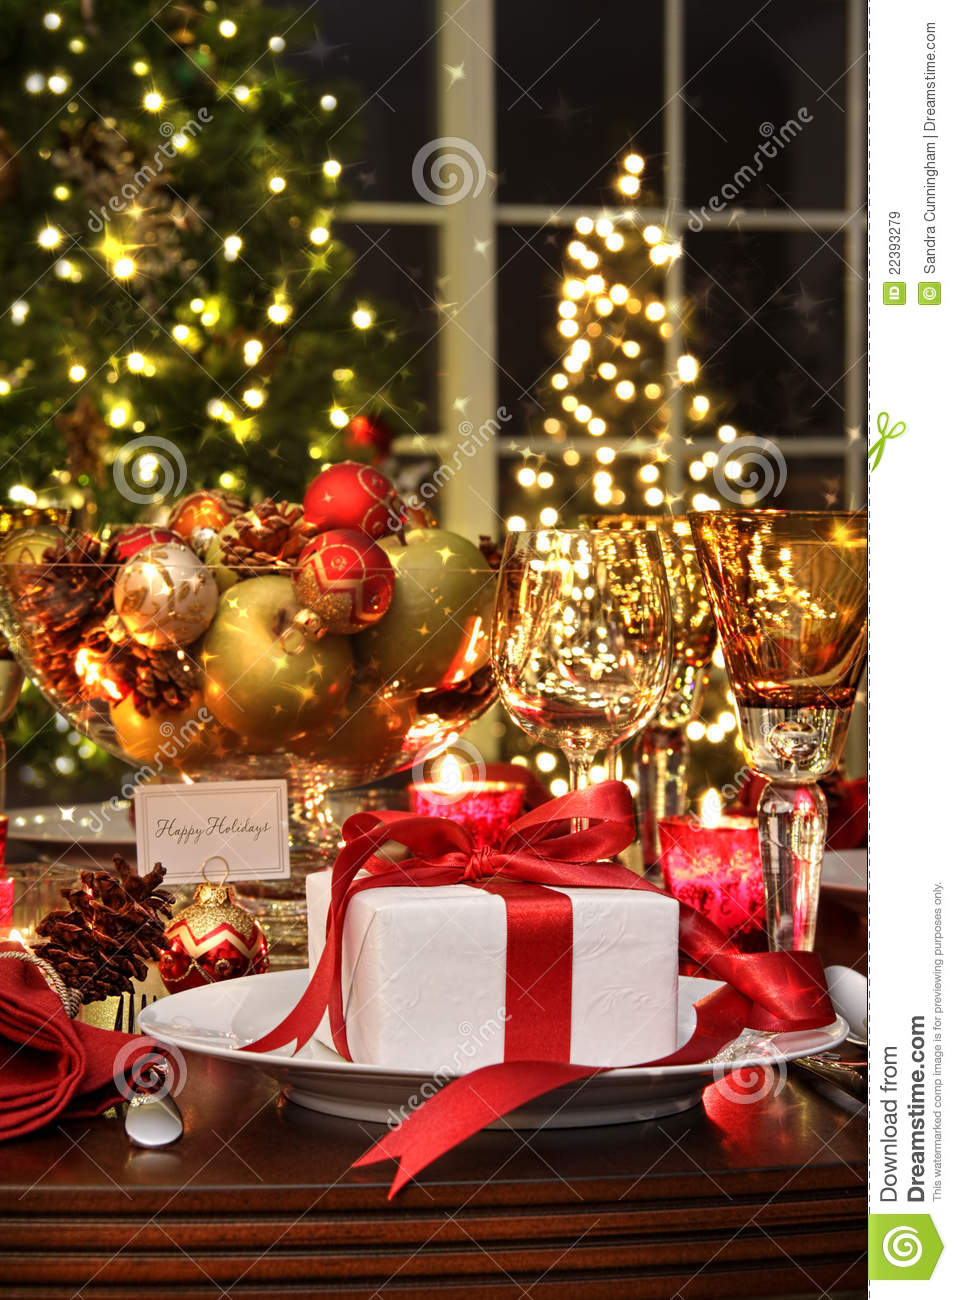 Table Setting With Festive Gift Royalty Free Stock